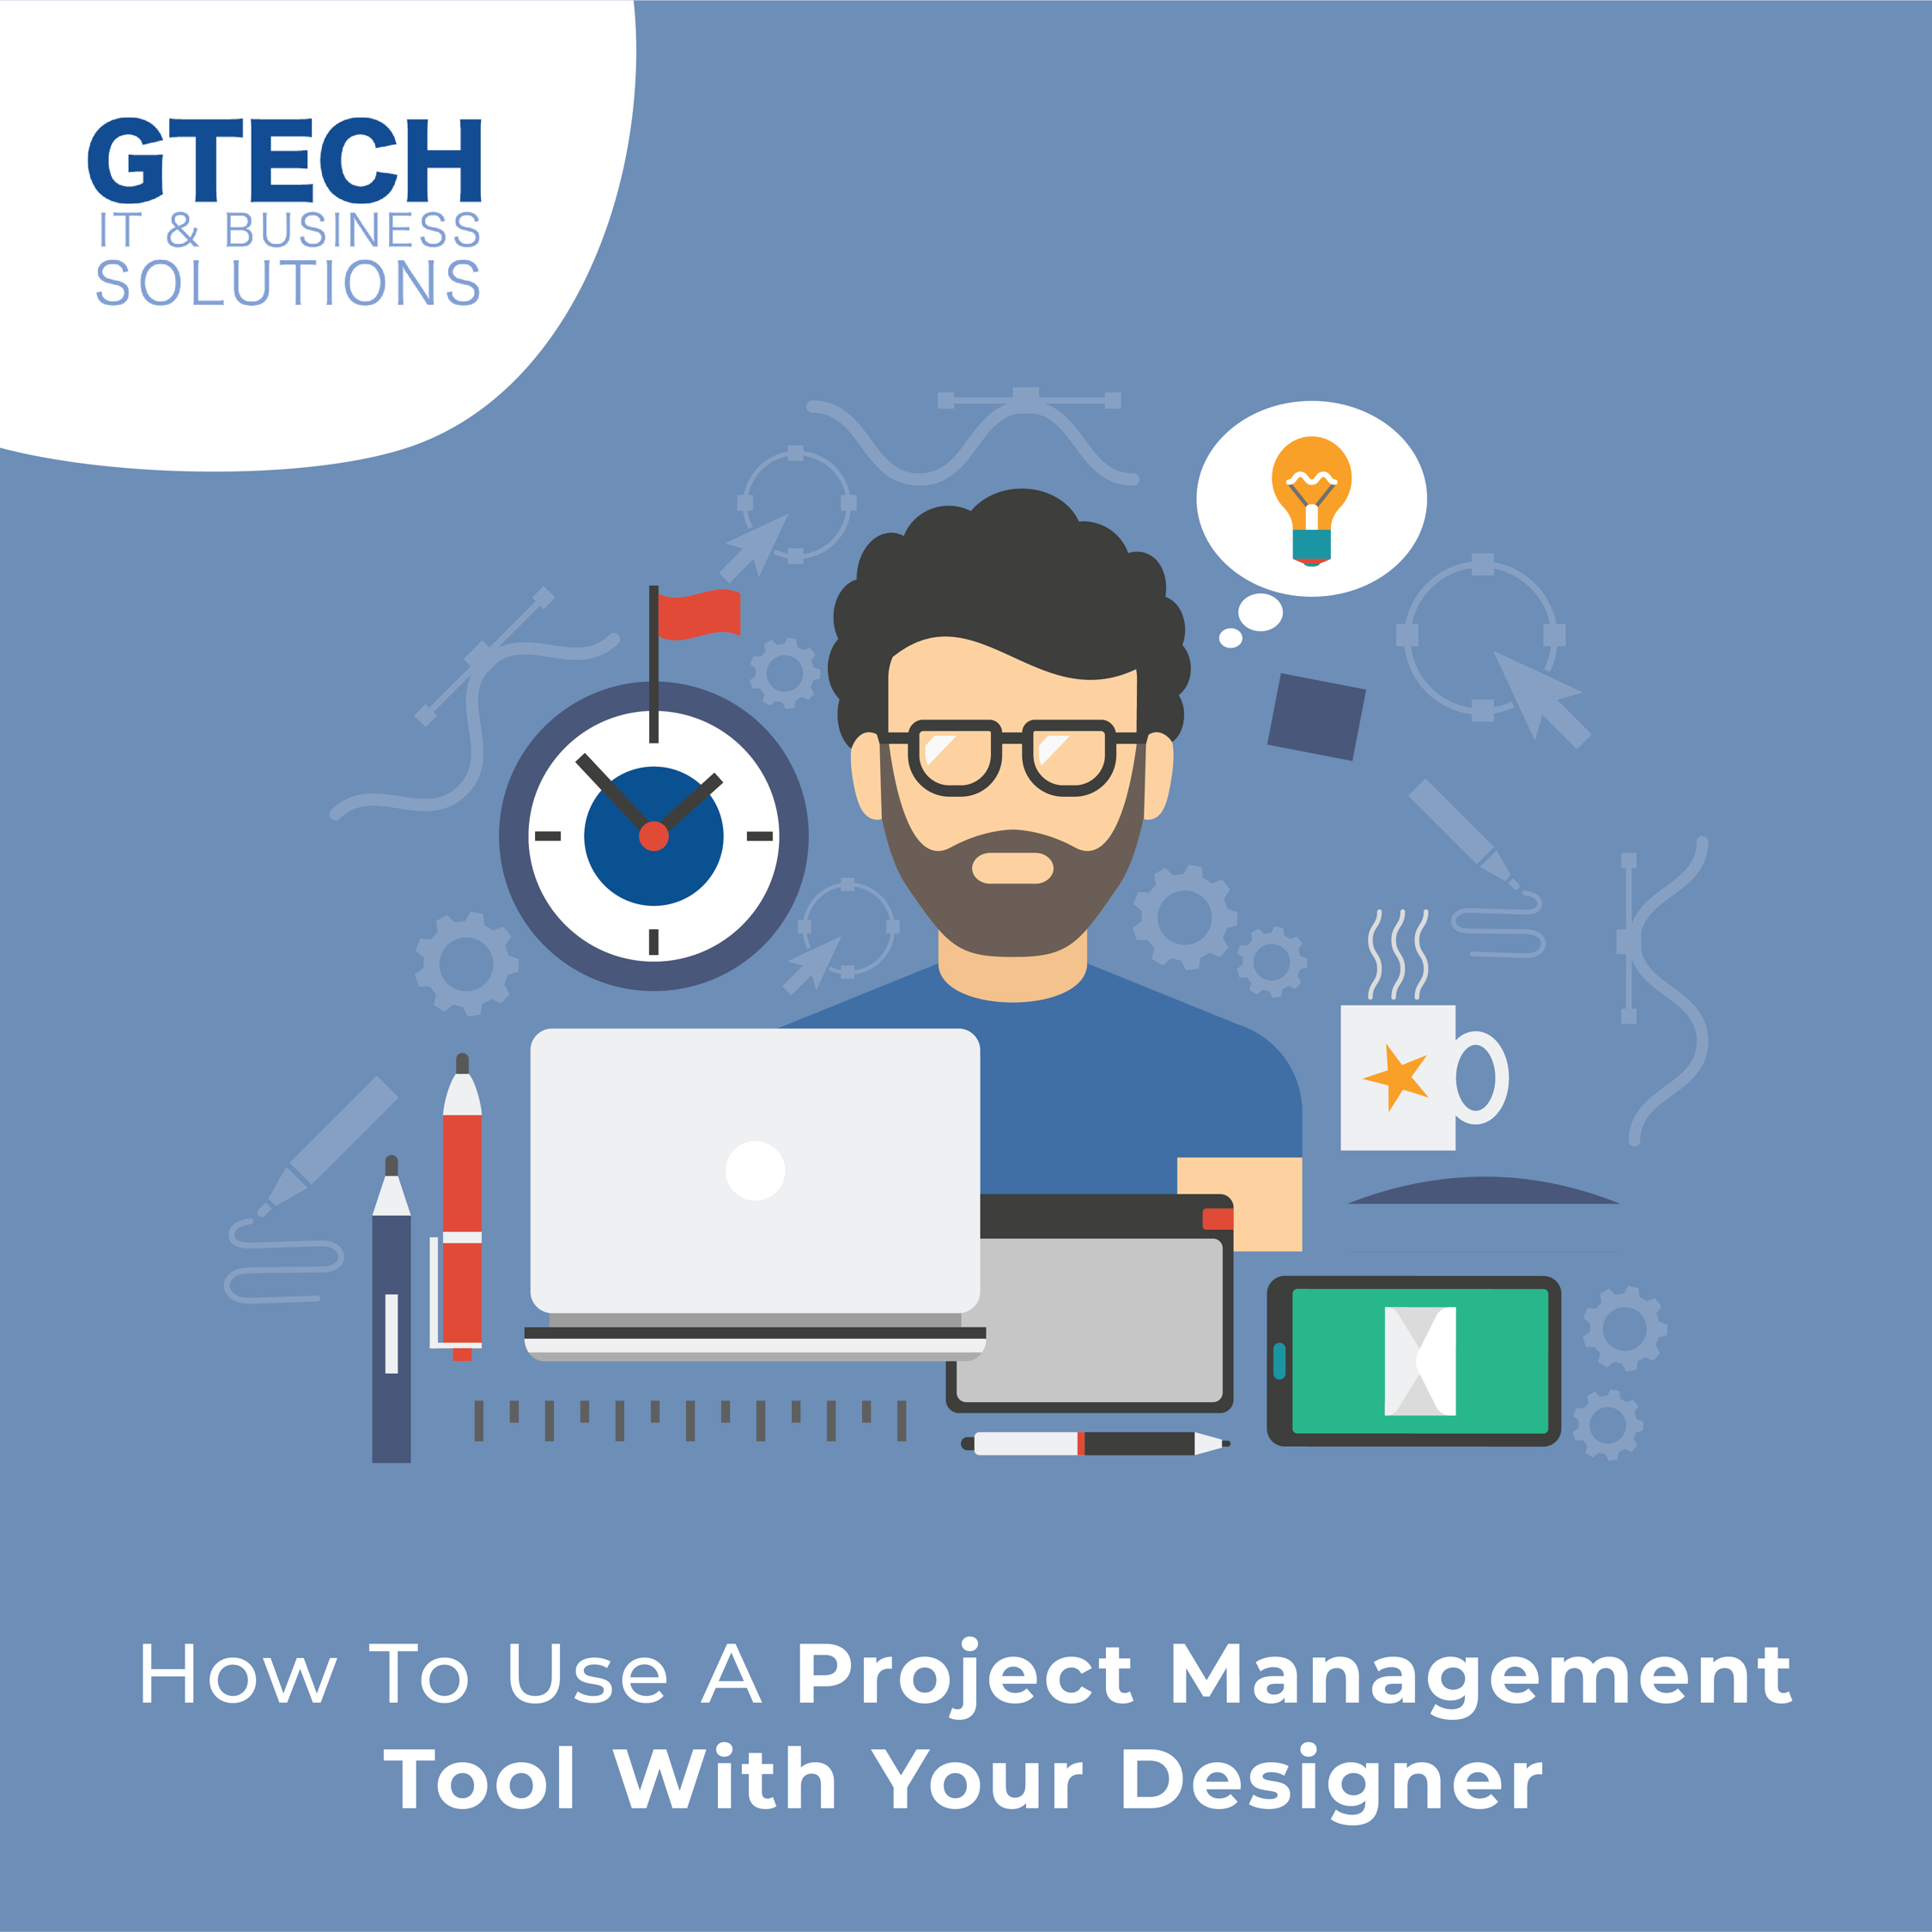 How To Use A Project Management Tool With Your Designer